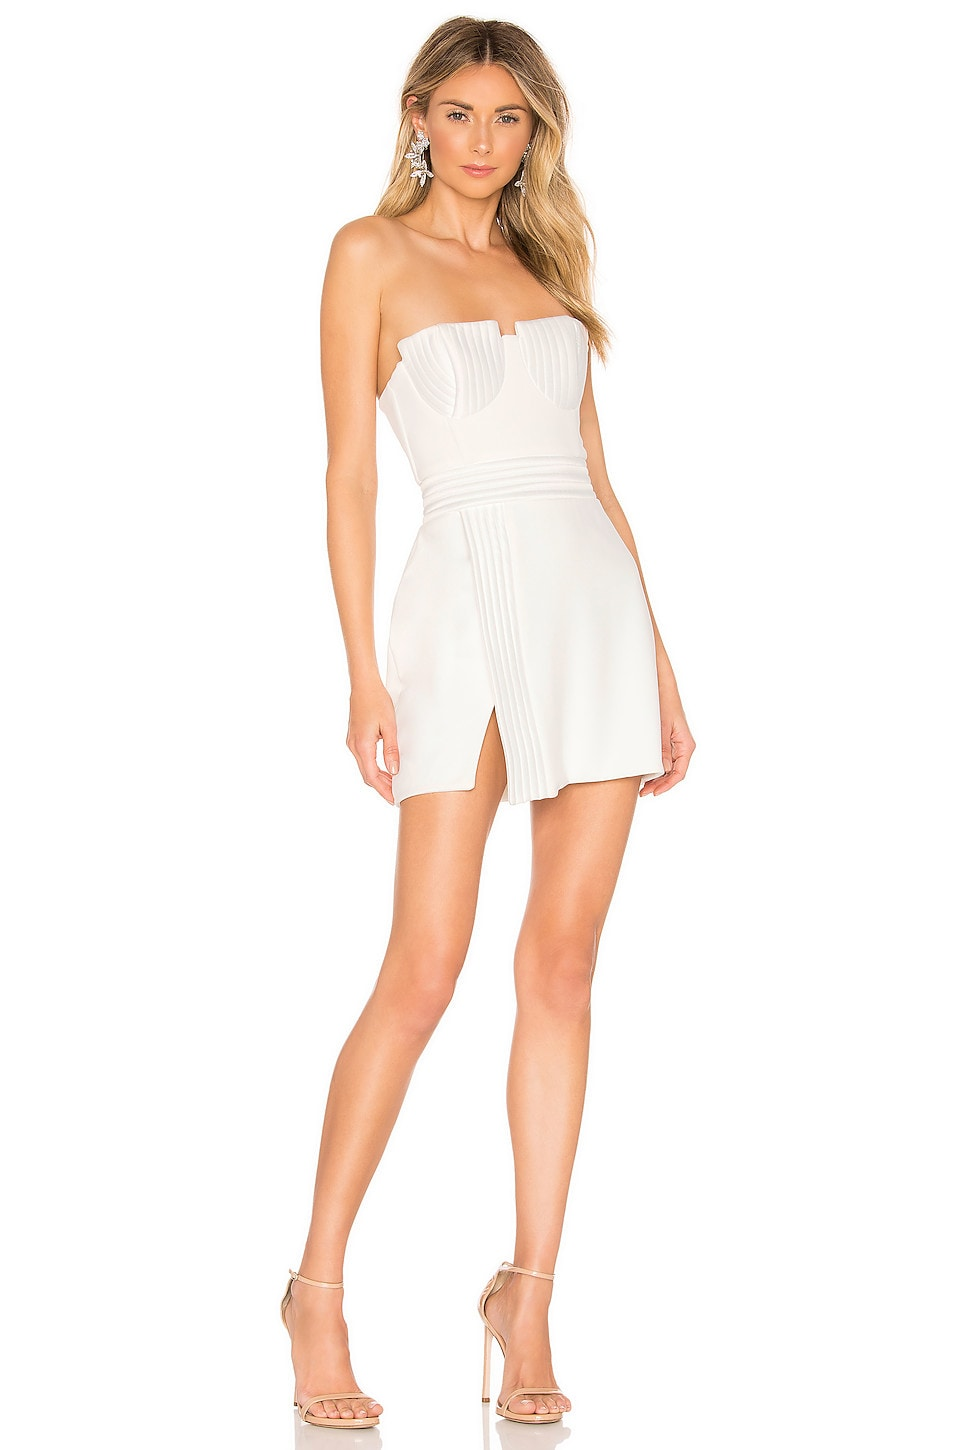 Zhivago Fairmont Dress in White